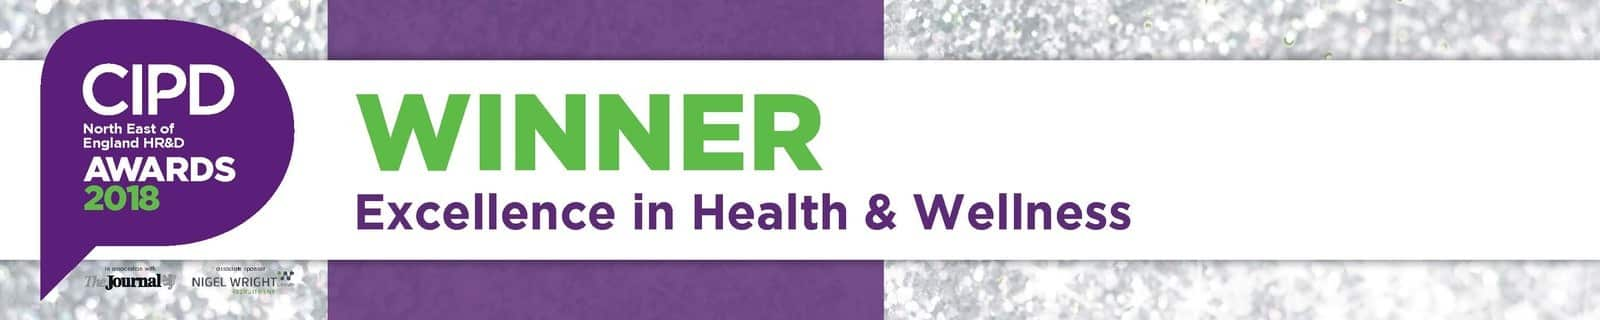 CIPD Awards 2018 Winner for Excellence in Heath and Wellness award logo